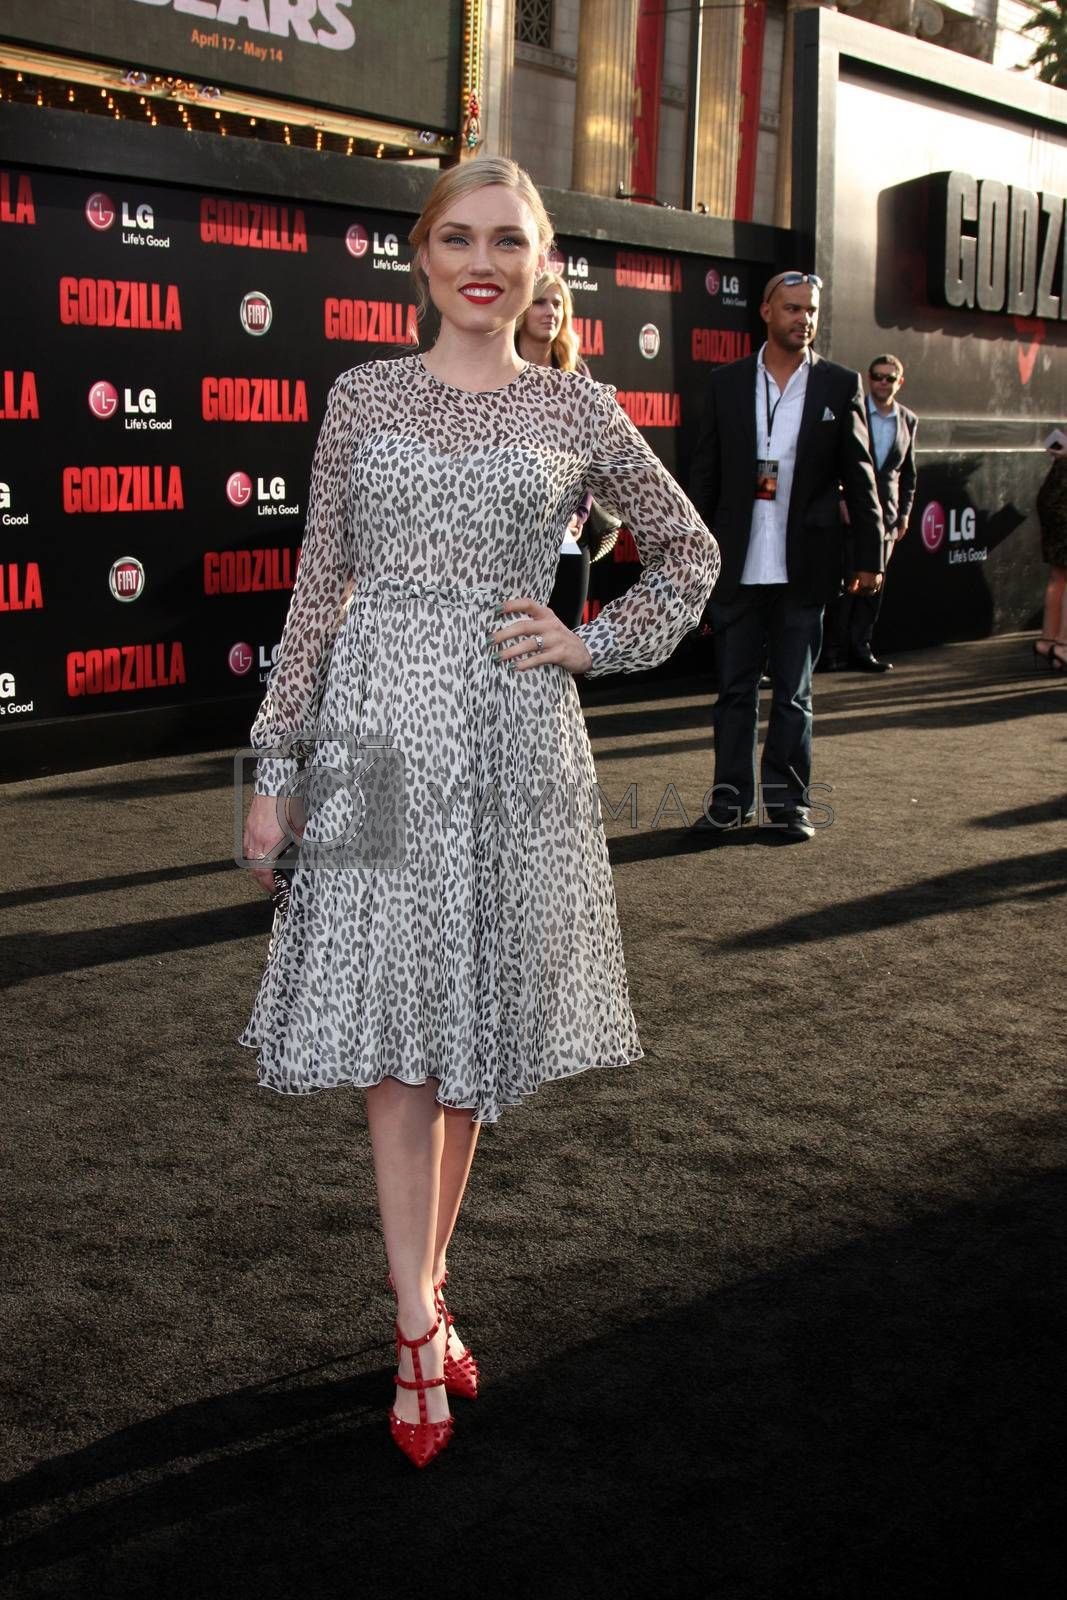 """Clare Grant at the """"Godzilla"""" Los Angeles Premiere, Dolby Theater, Hollywood, CA 05-08-14/ImageCollect by ImageCollect"""